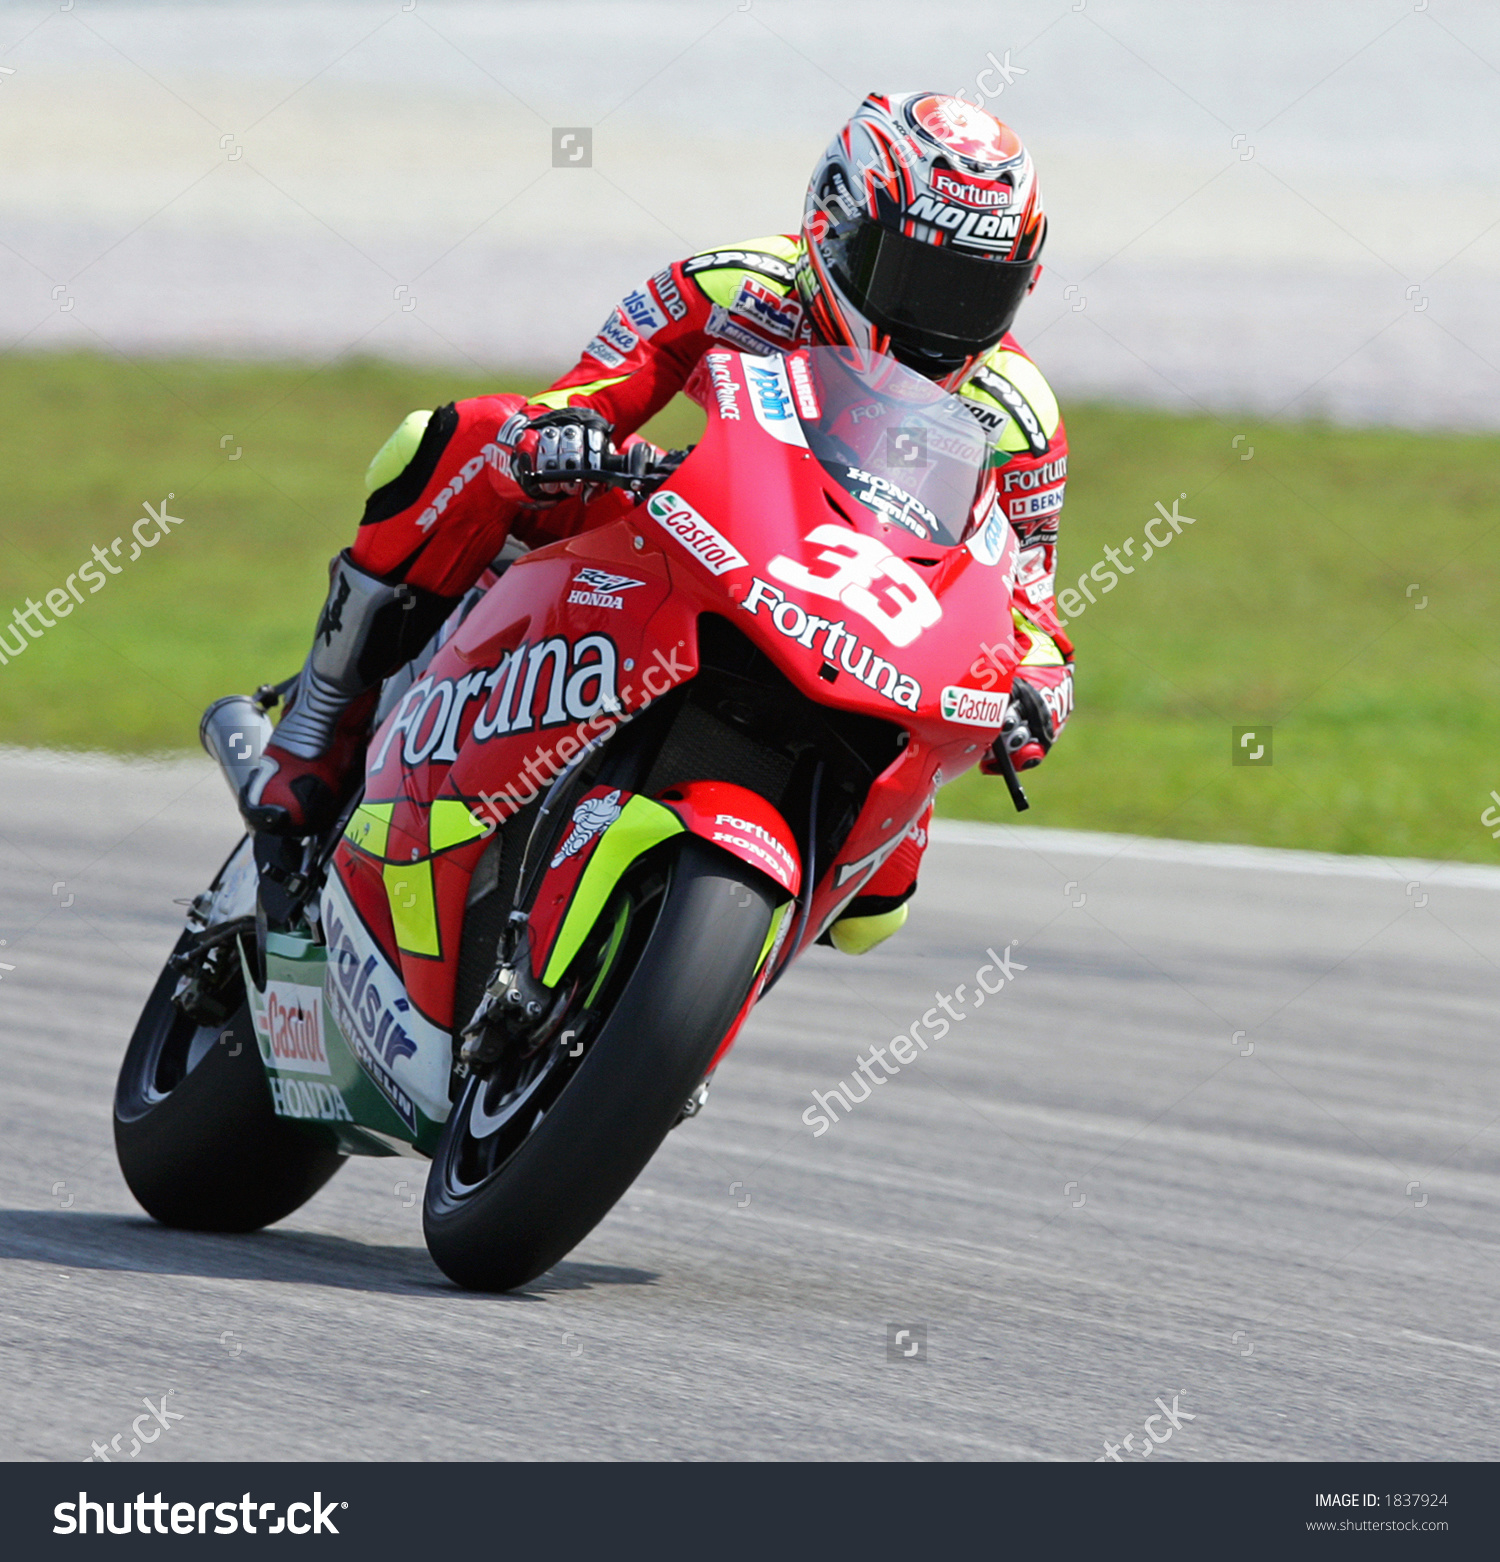 Italian Motogp Rider Marco Melandri Fortuna Stock Photo 1837924.